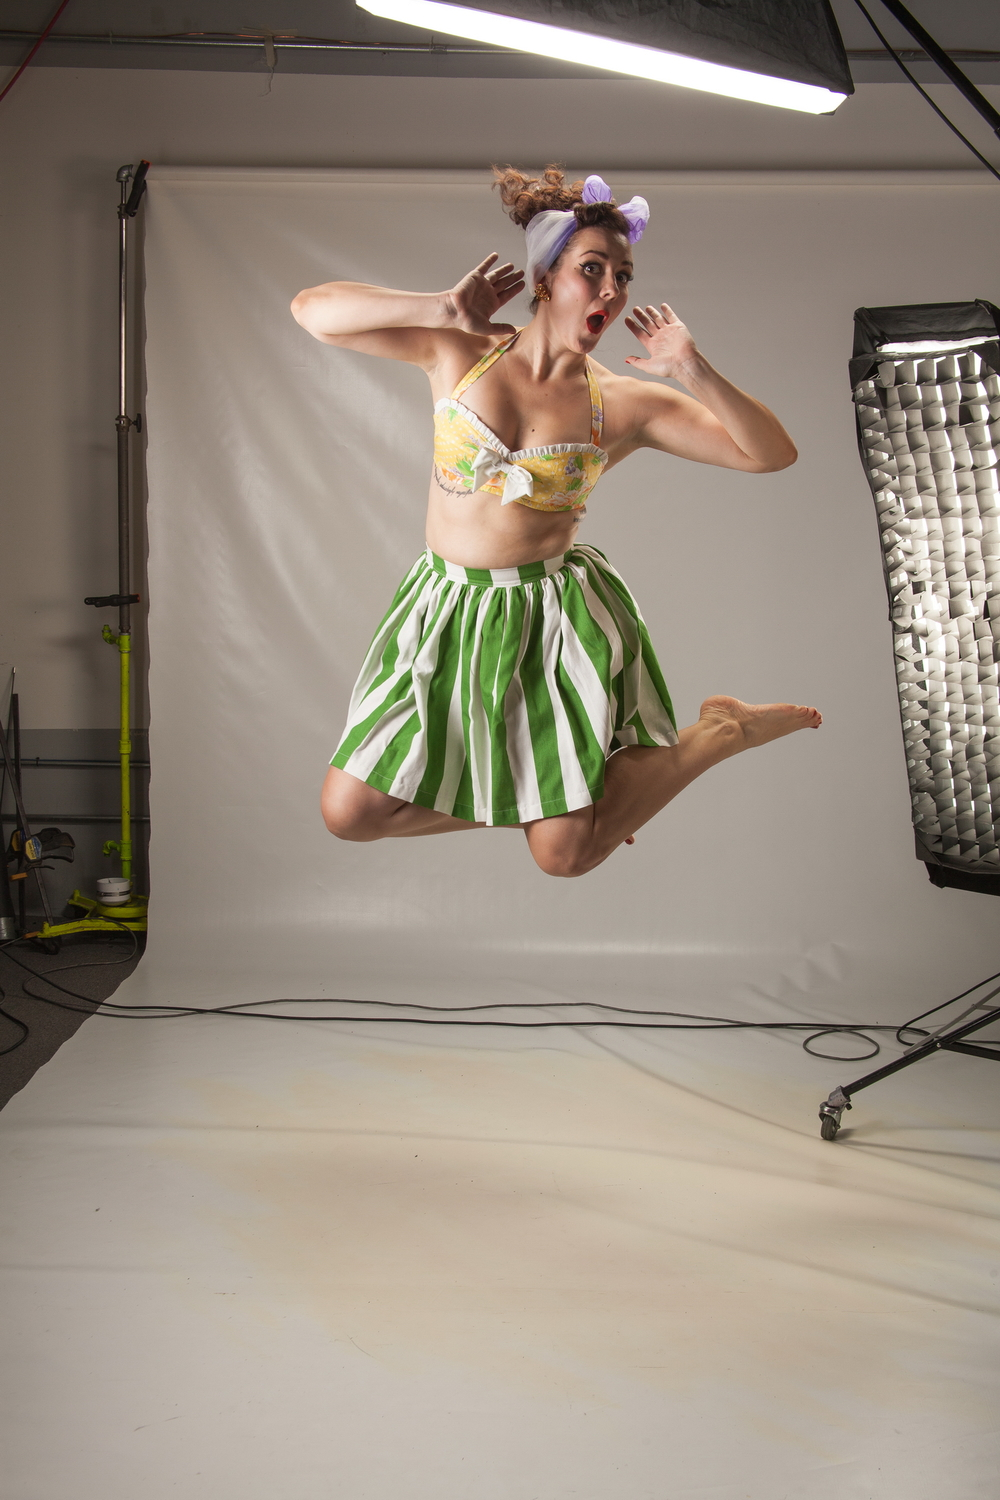 This adorable custom play suit from  Lizzy D Creations  was perfect for some action shots!